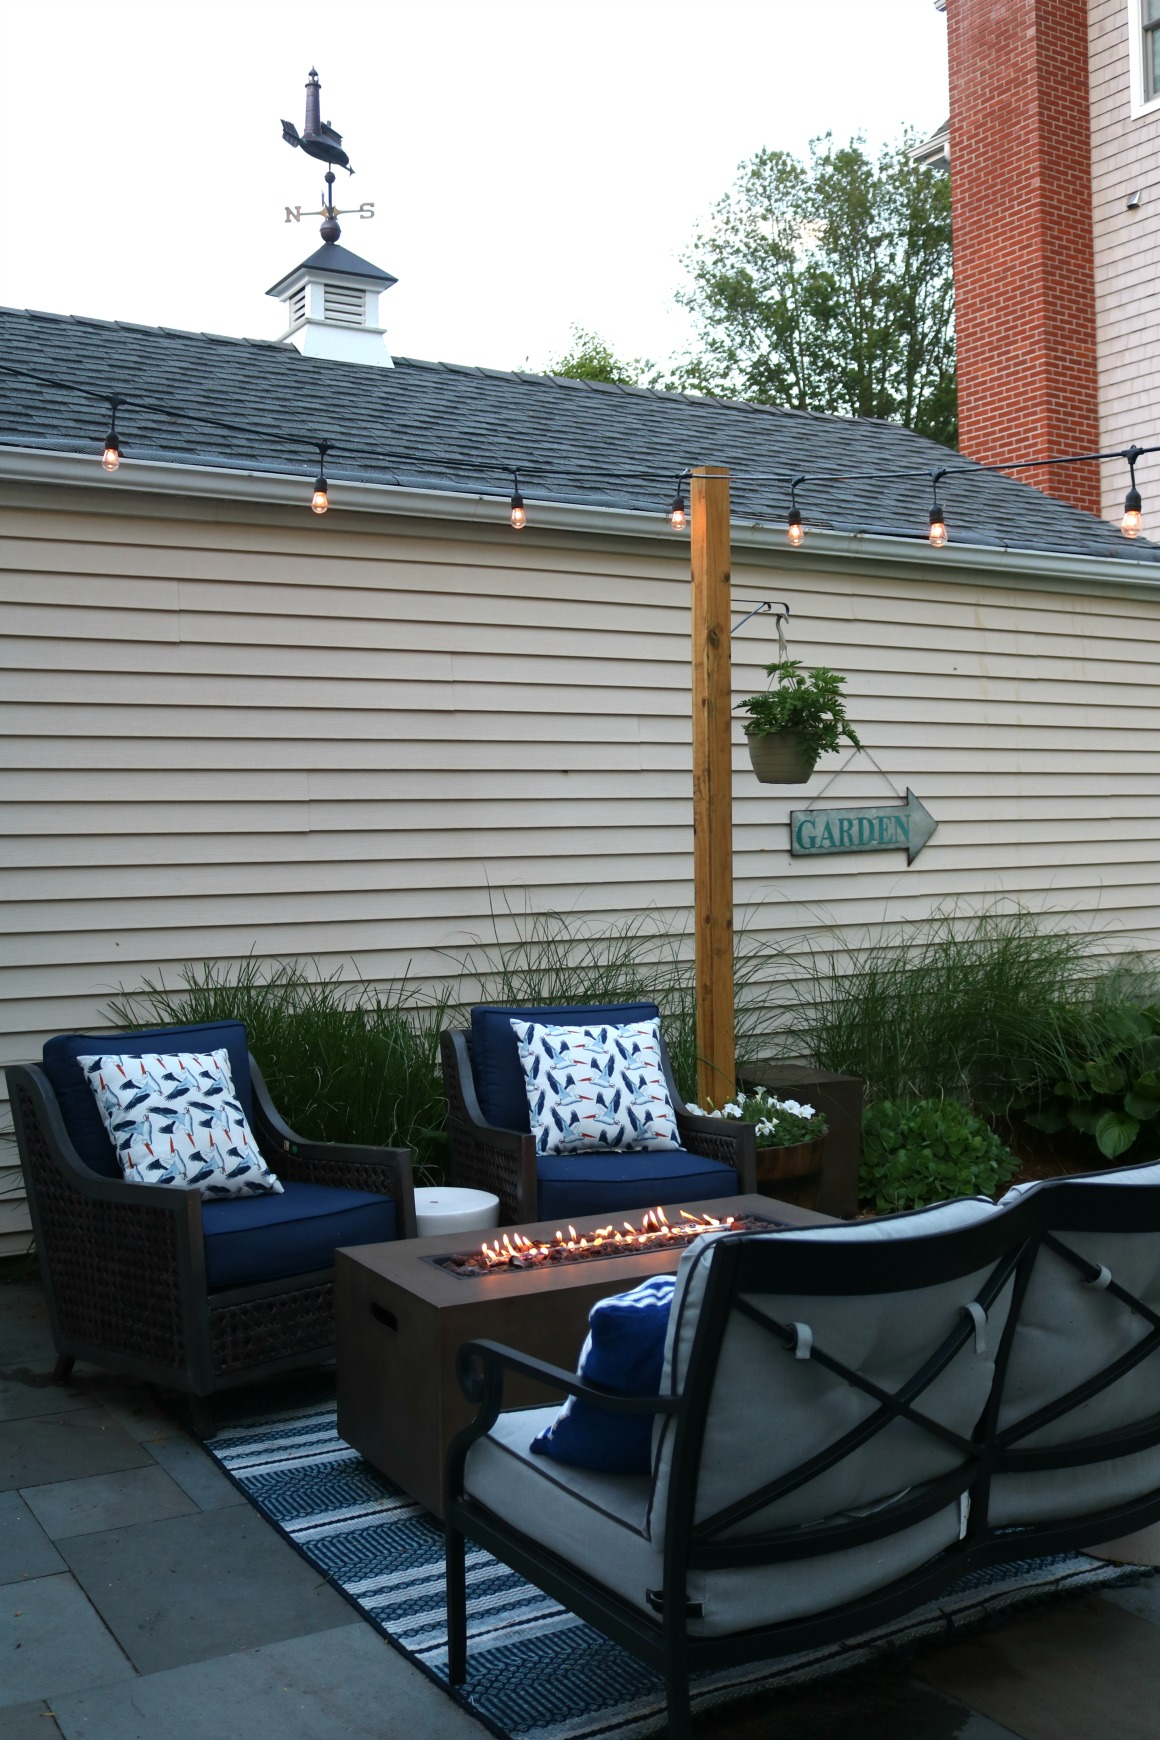 Backyard Patio- Outdoor Furniture for Small Spaces ... on Patio Ideas For Small Spaces id=31675